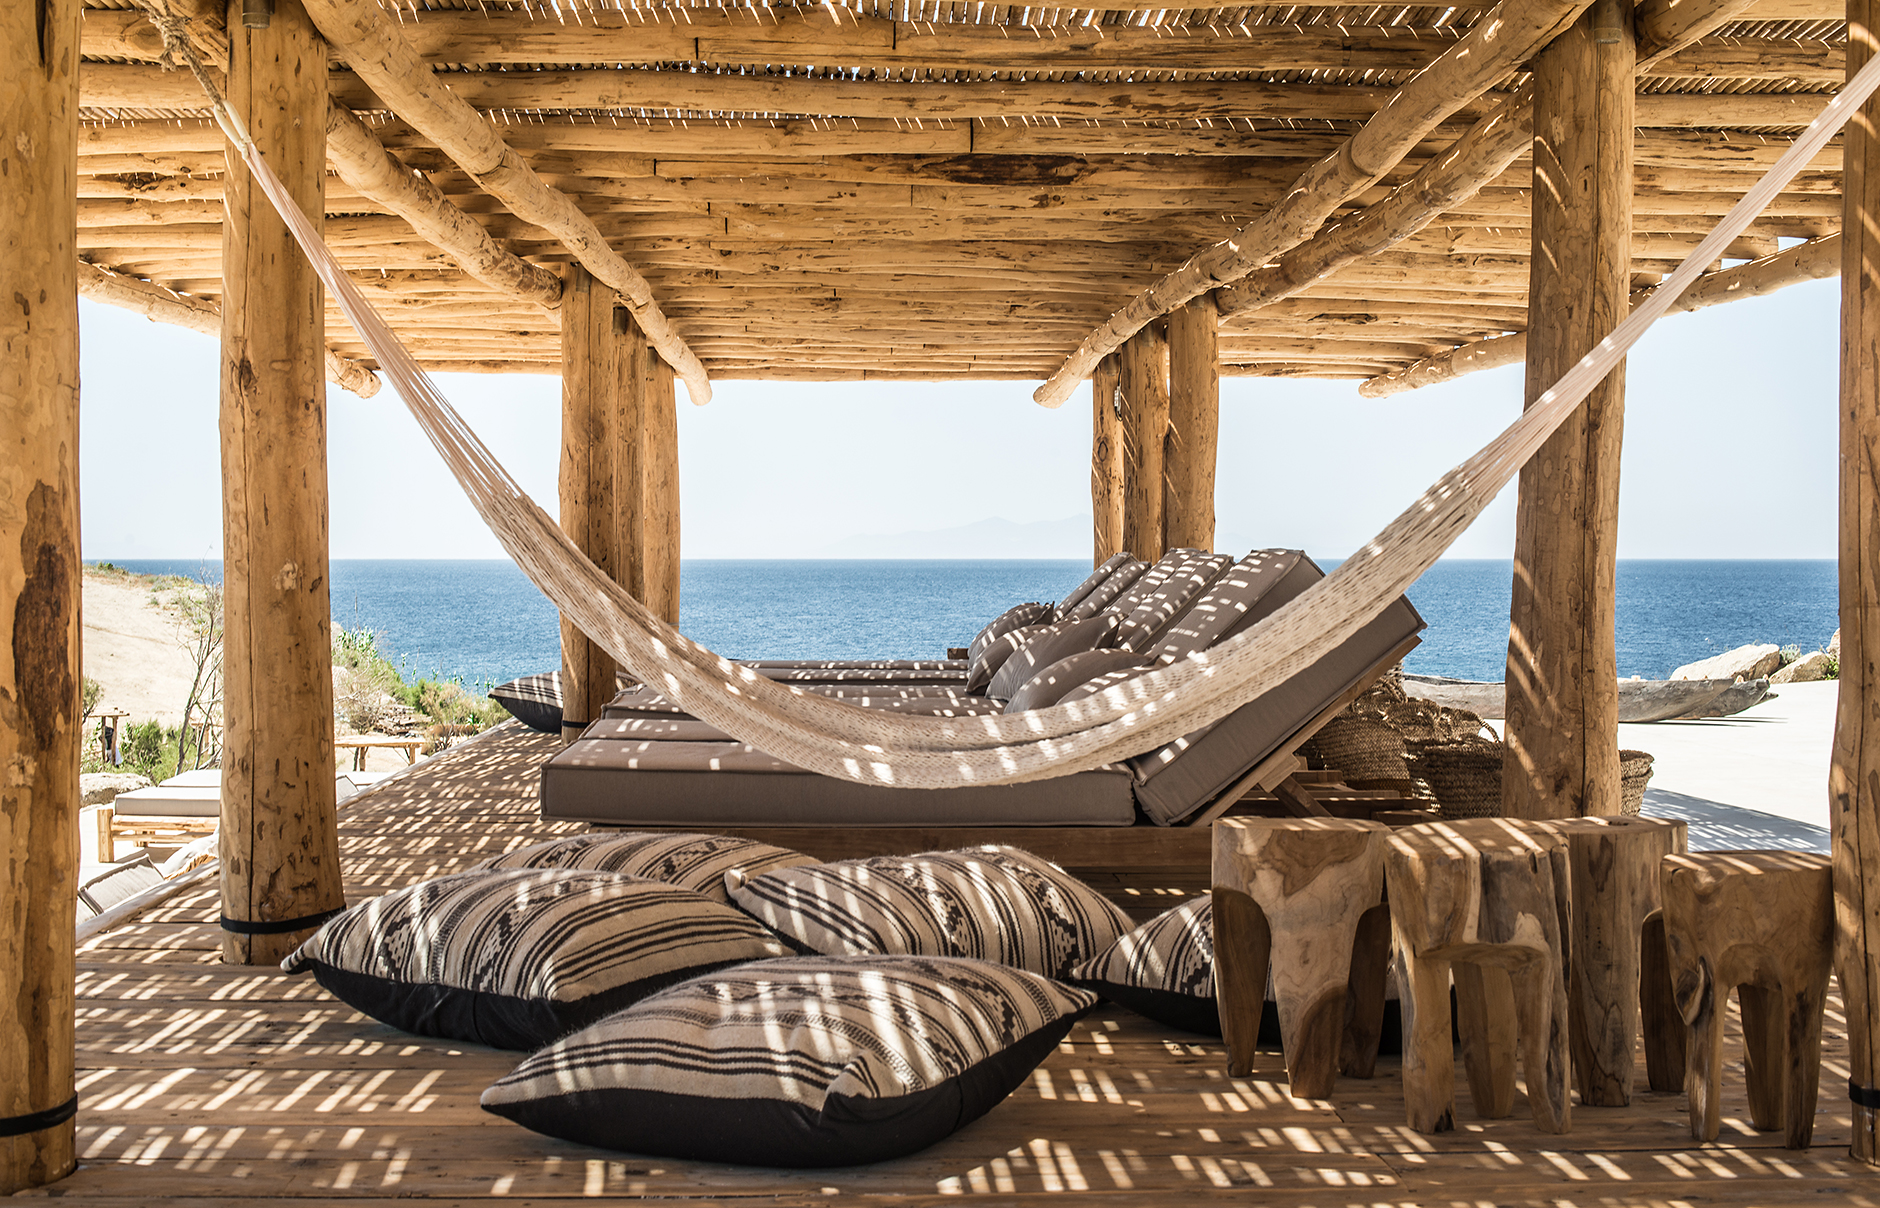 rediscover a rustic beach experience at scorpios mykonos in greece - Rustic Hotel 2015